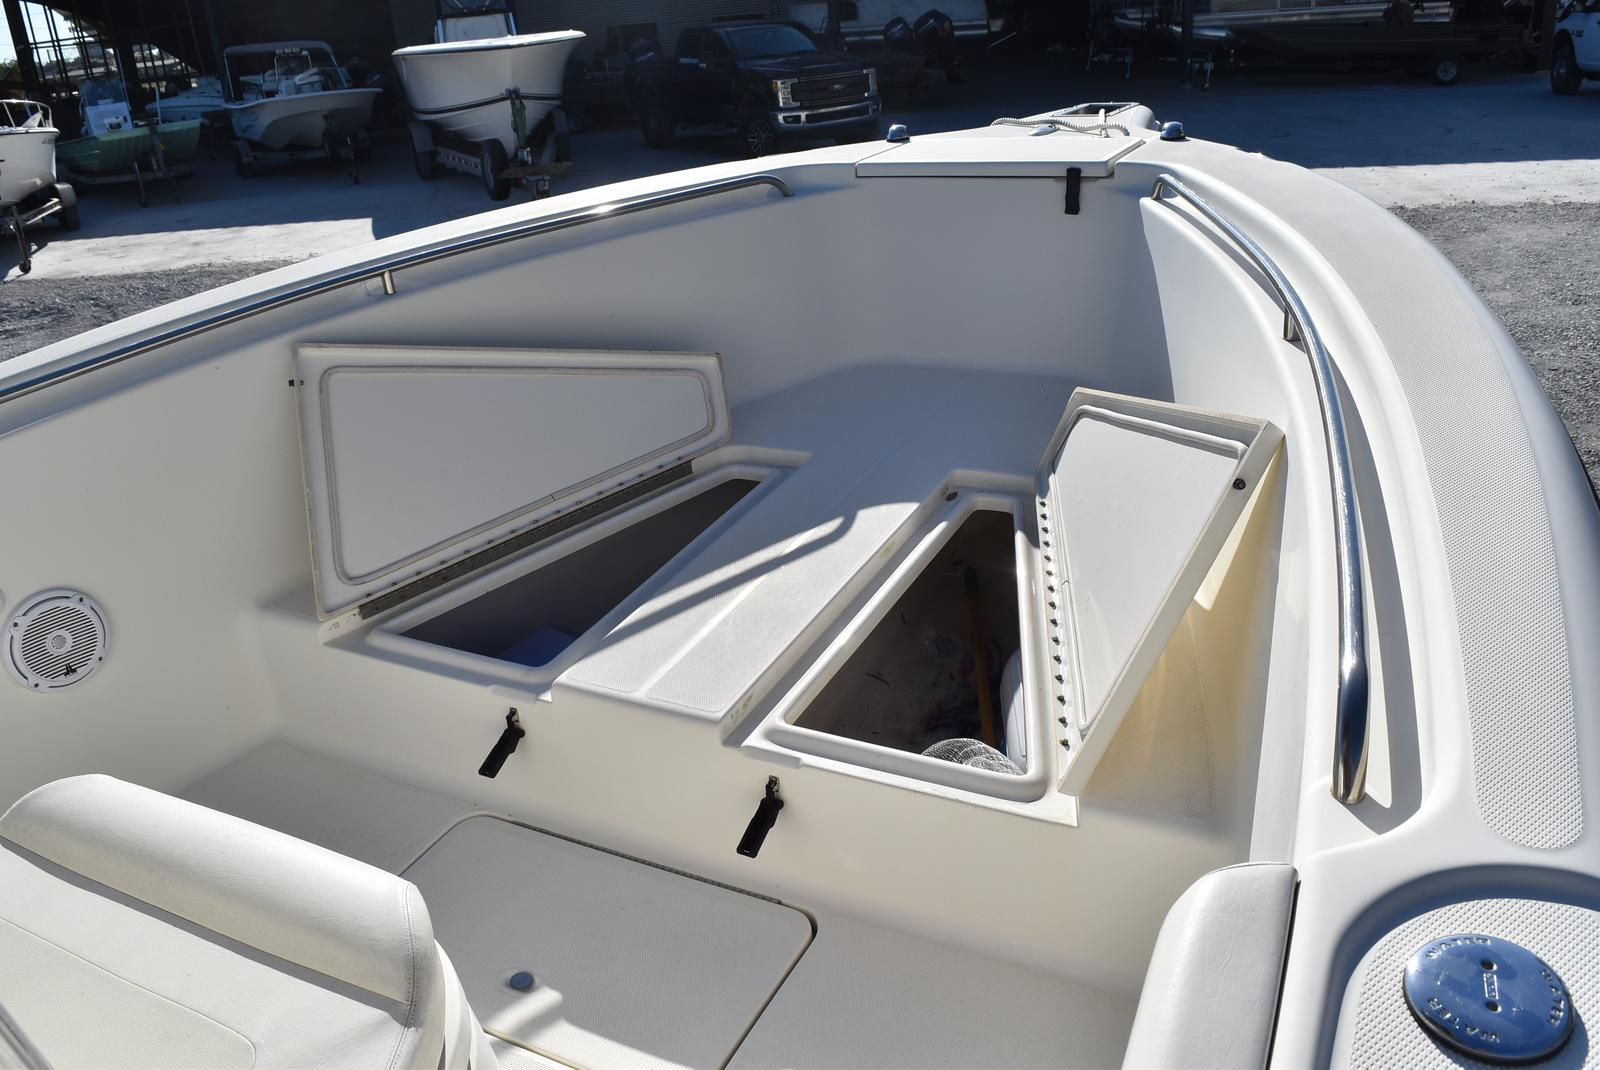 2006 Triton boat for sale, model of the boat is 2486 & Image # 21 of 24